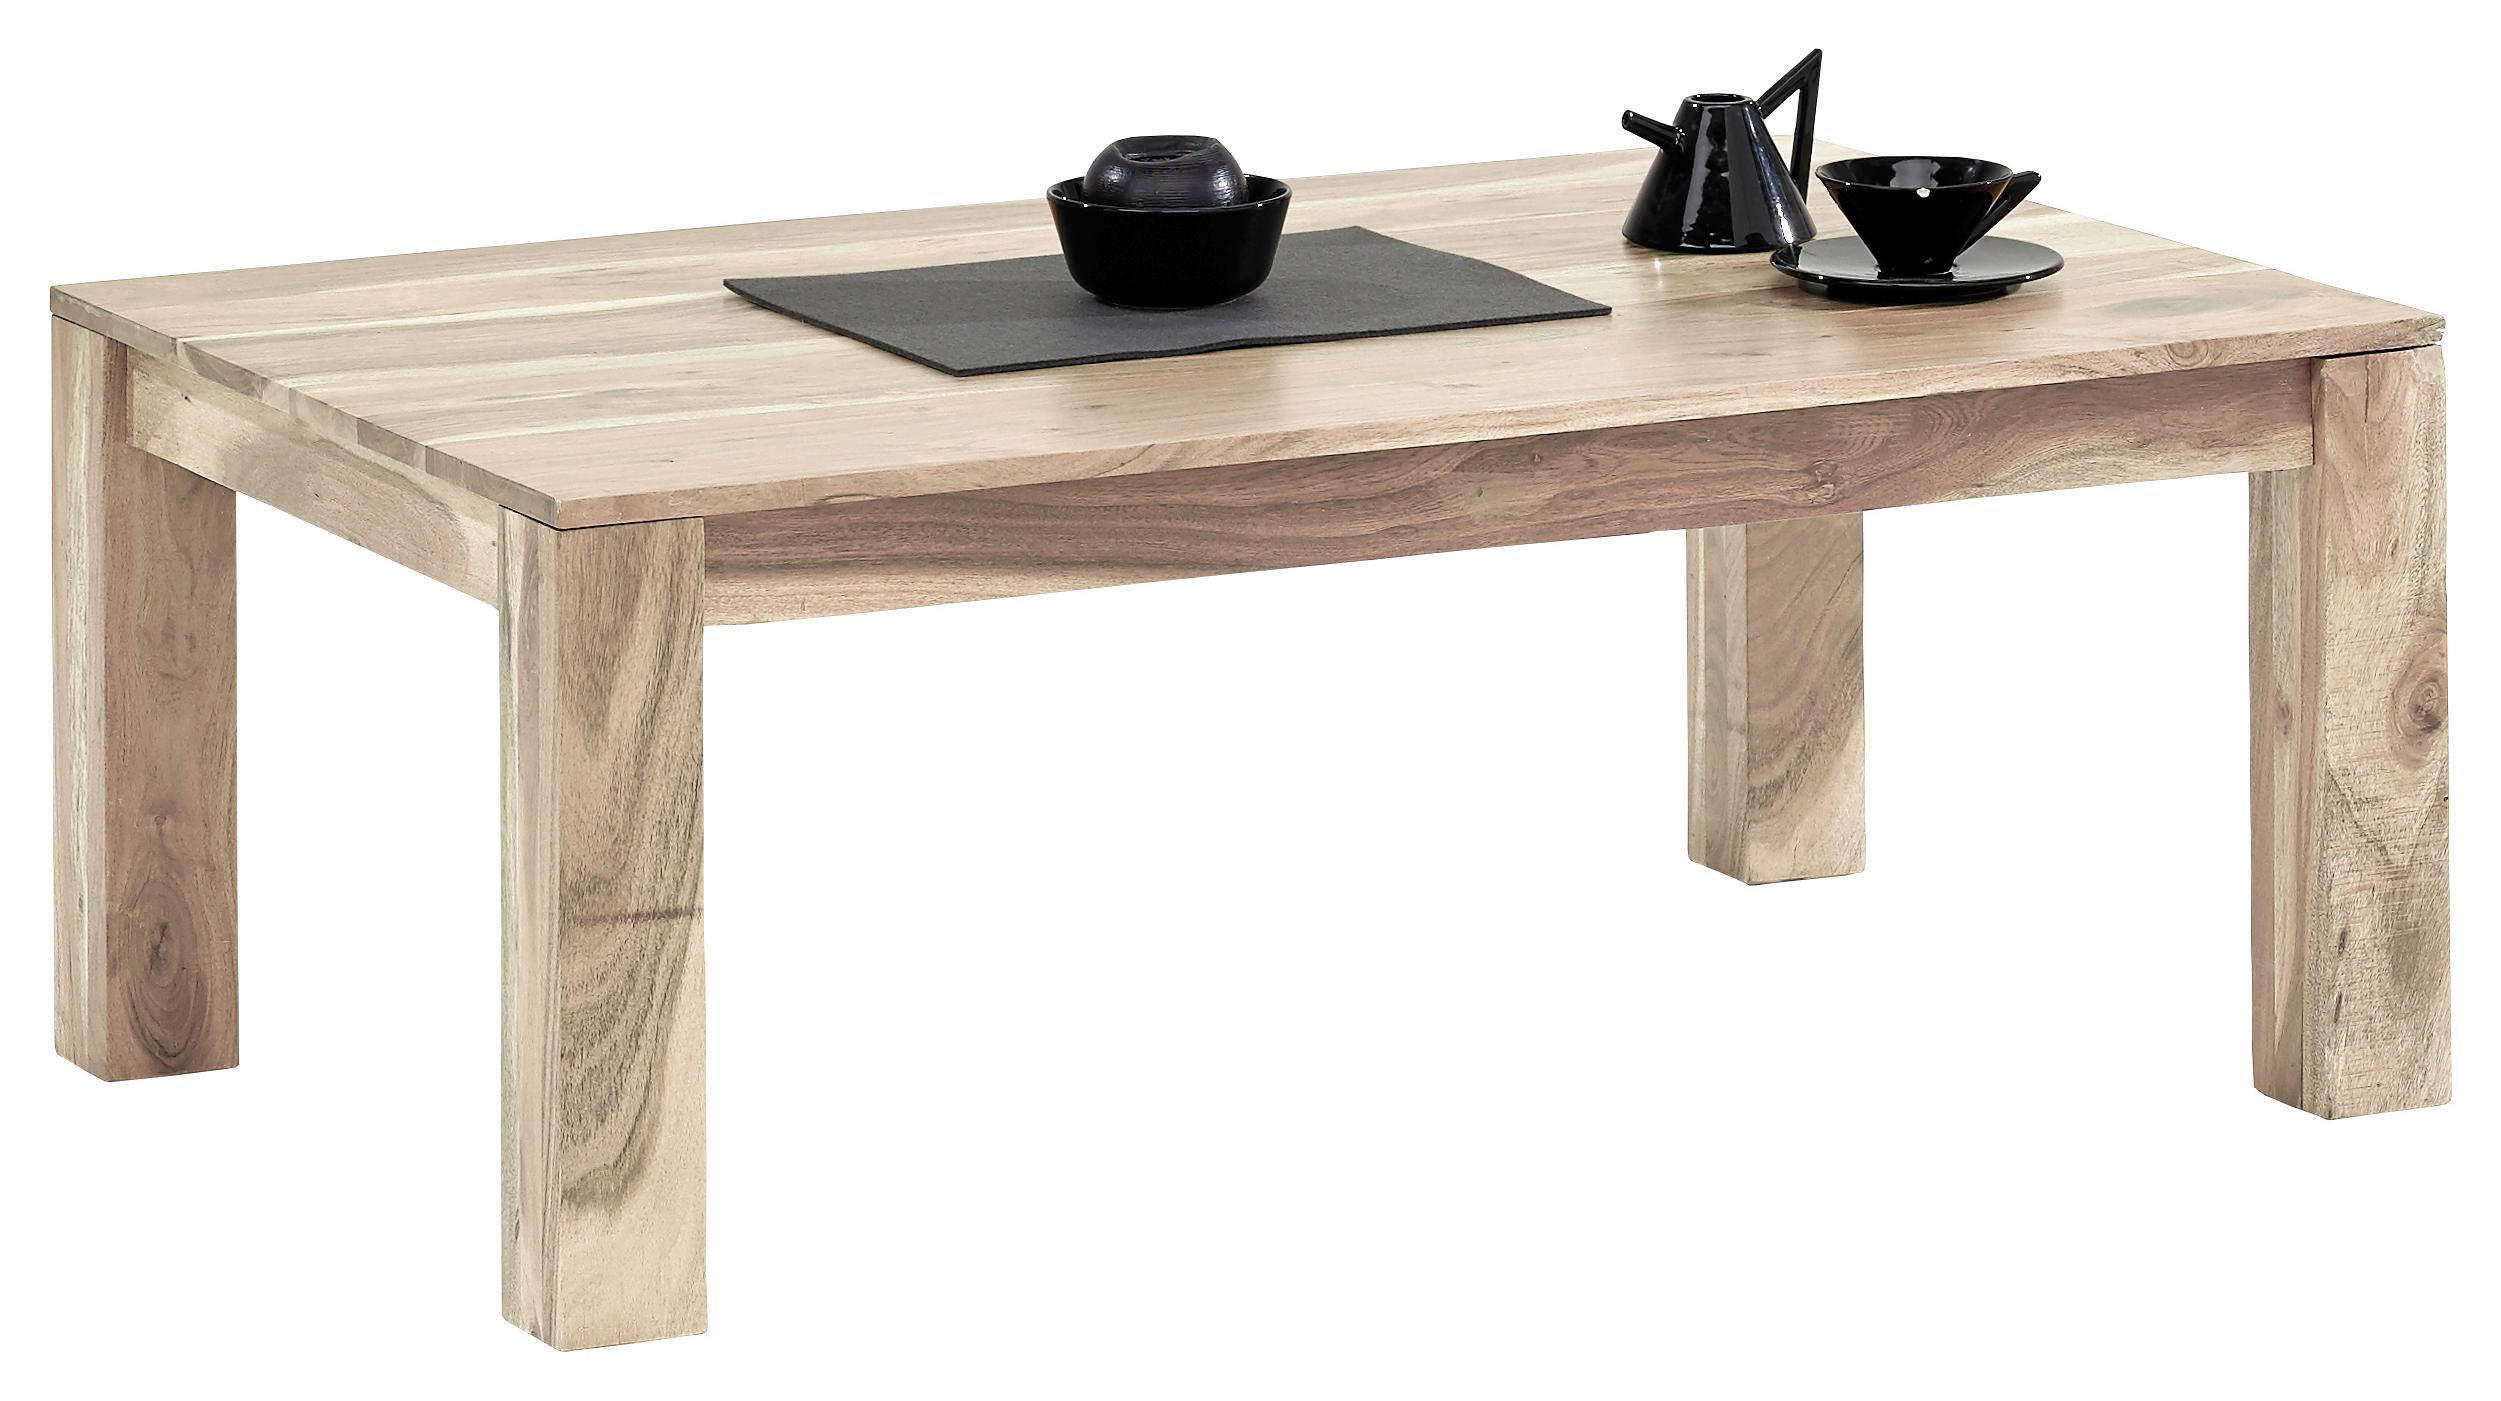 Couchtisch Holzscheibe Couchtisch Dunkelbraun Holz Simple Beautiful Mobilifiver